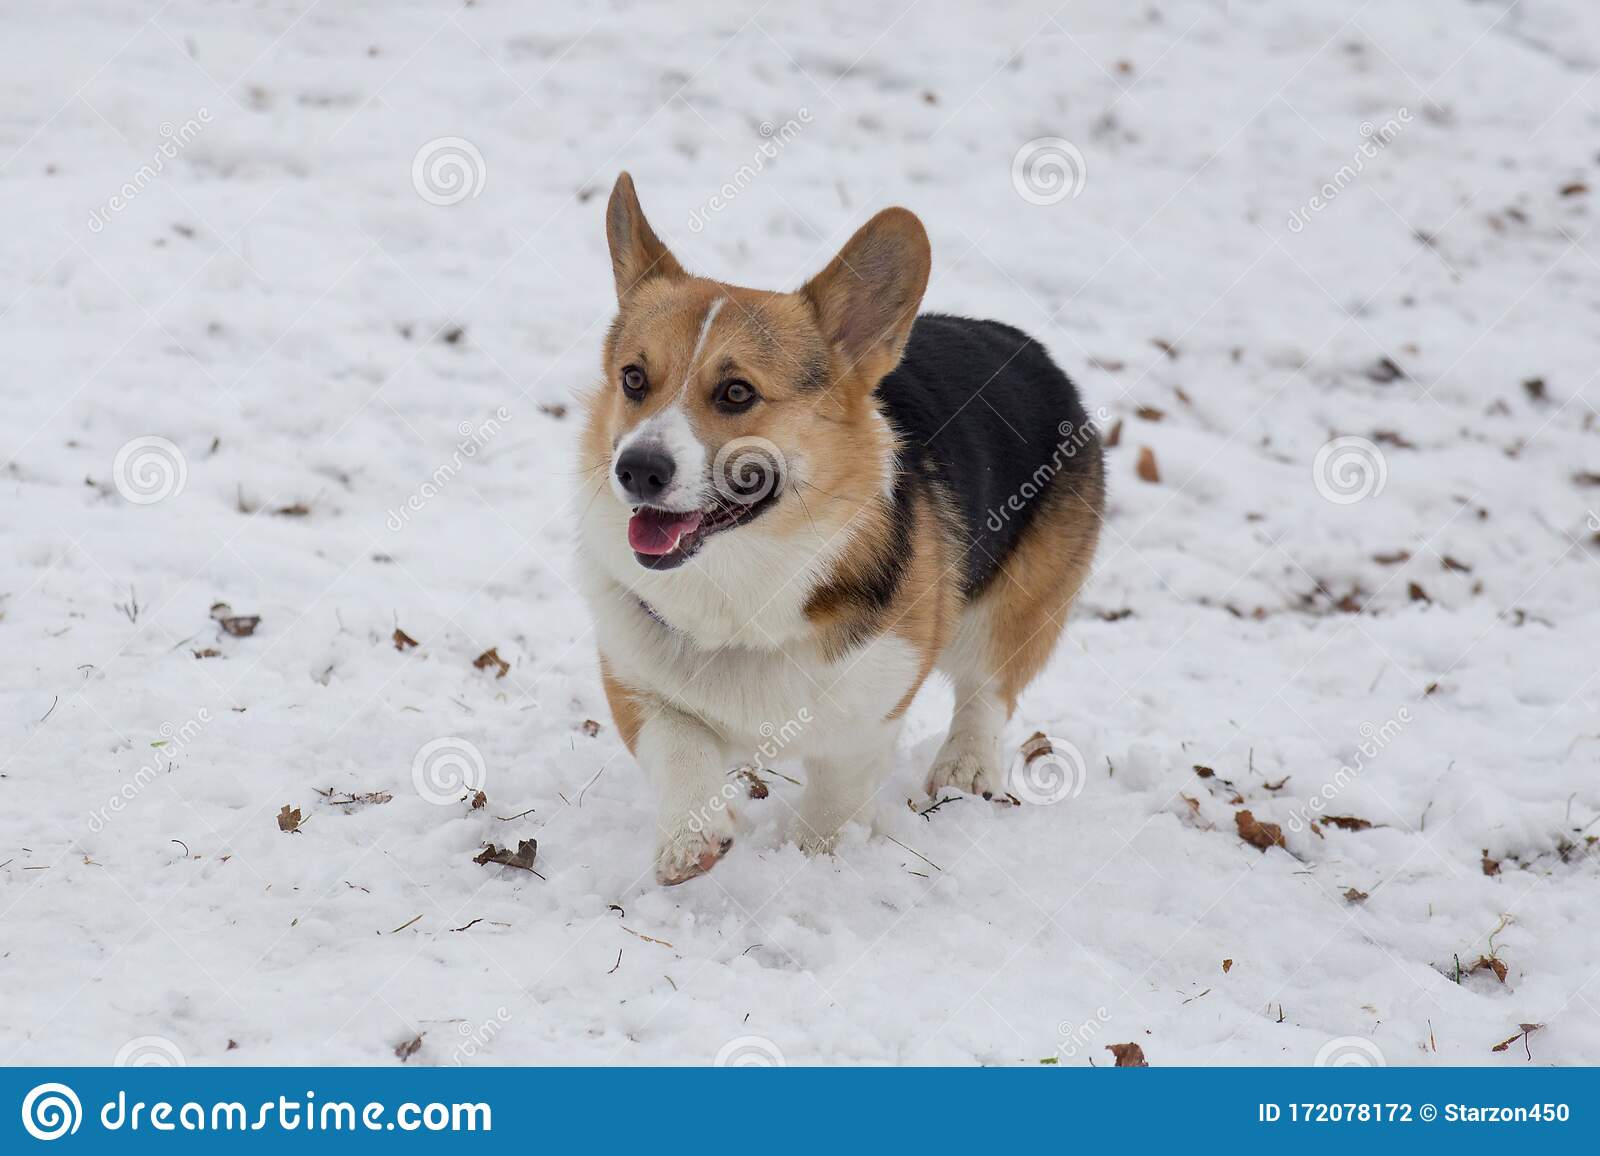 Pembroke Welsh Corgi Puppy Is Walking In The Winter Park Pet Animals Stock Photo Image Of Purebred Tail 172078172